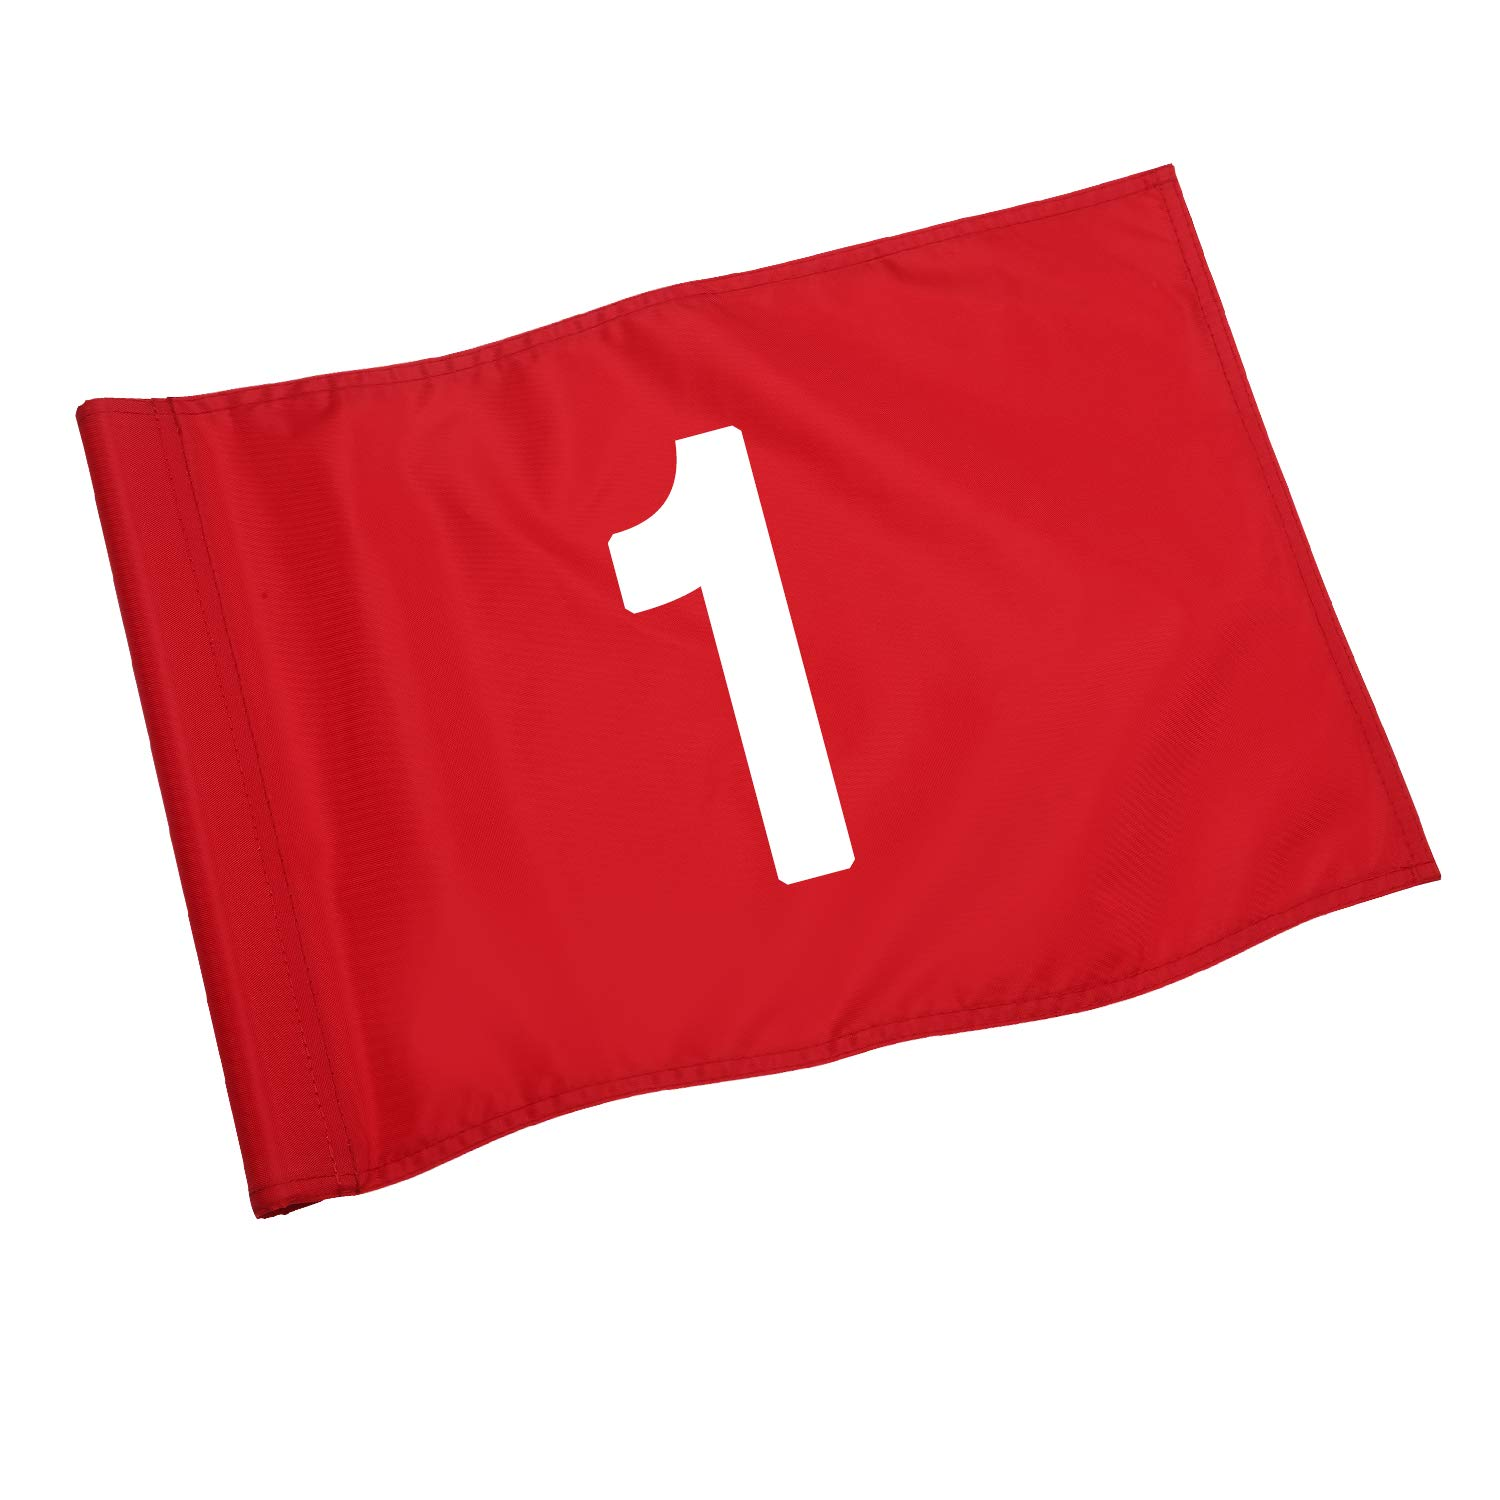 KINGTOP Solid Golf Flag with Plastic Insert, Putting Green Flags for Yard, Indoor/Outdoor, Garden Pin Flags, 420D Premium Nylon Flag, 13'' L x 20'' H, Red by KINGTOP